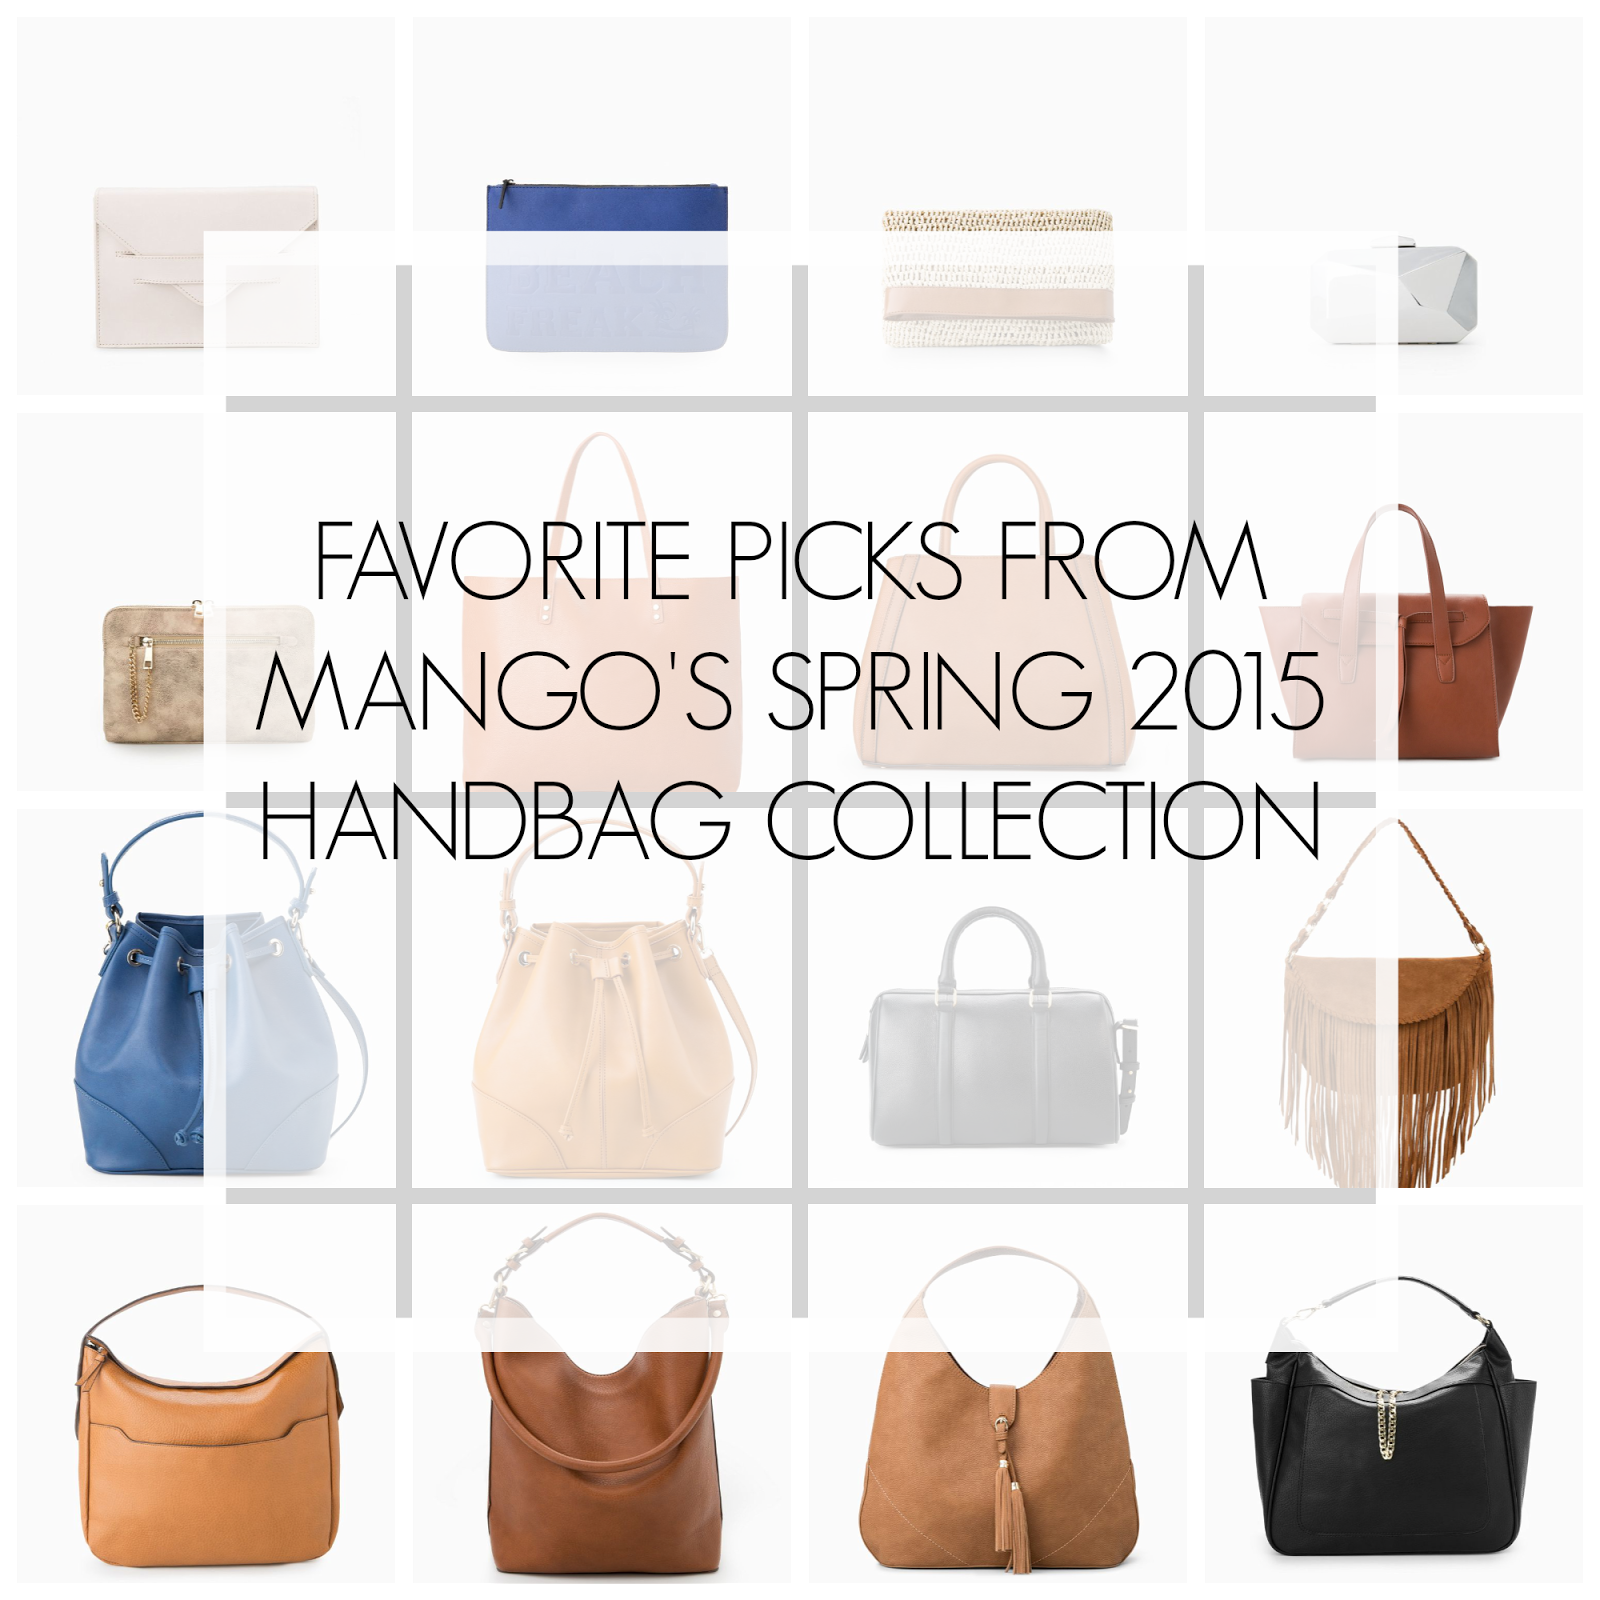 Ioanna's Notebook - Favorite Picks from Mango's Spring 2015 Handbag Collection